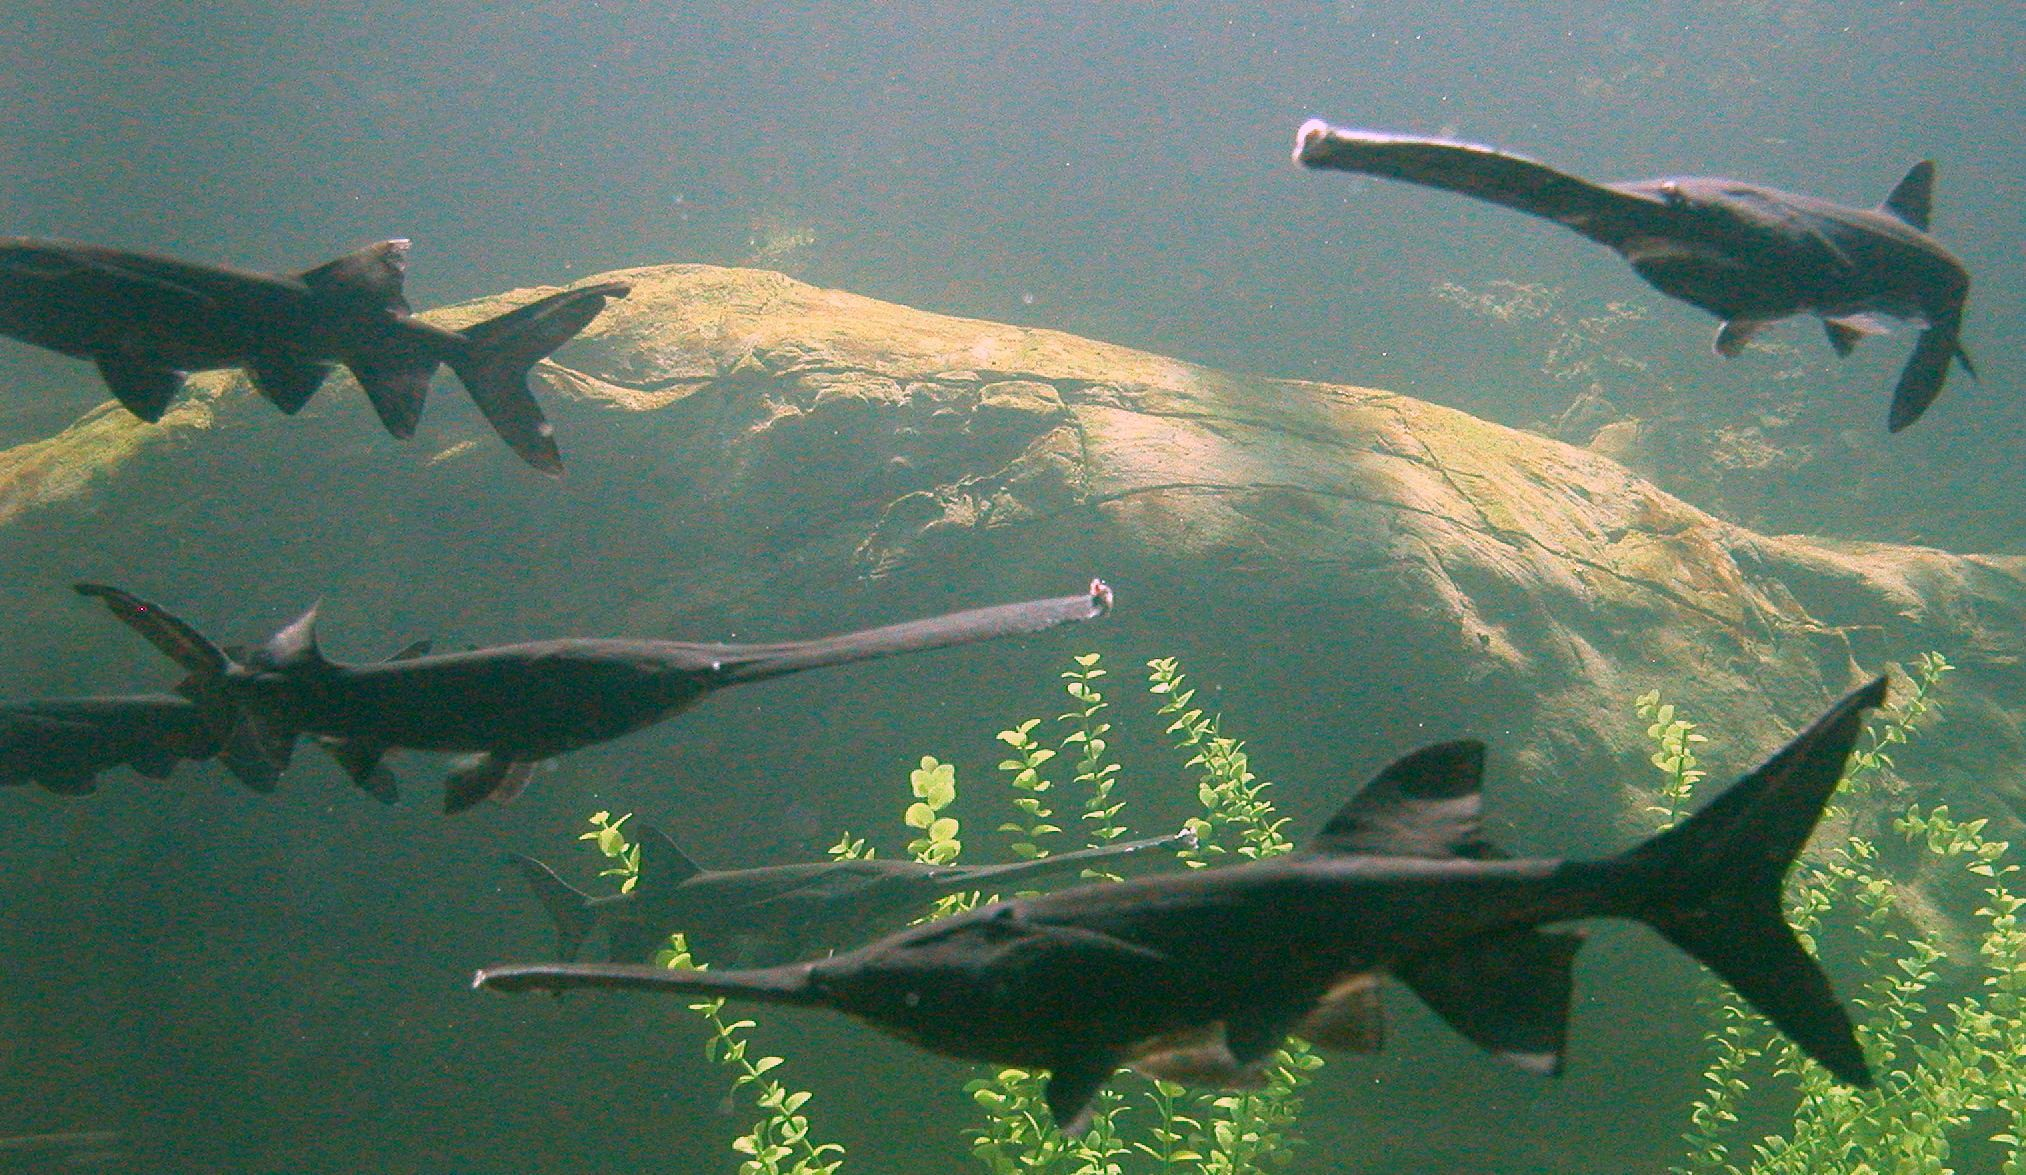 Freshwater fish kingdom - American Paddlefish Threatened In Virginia These Awesome Freshwater Fish Have Tails Very Similar To